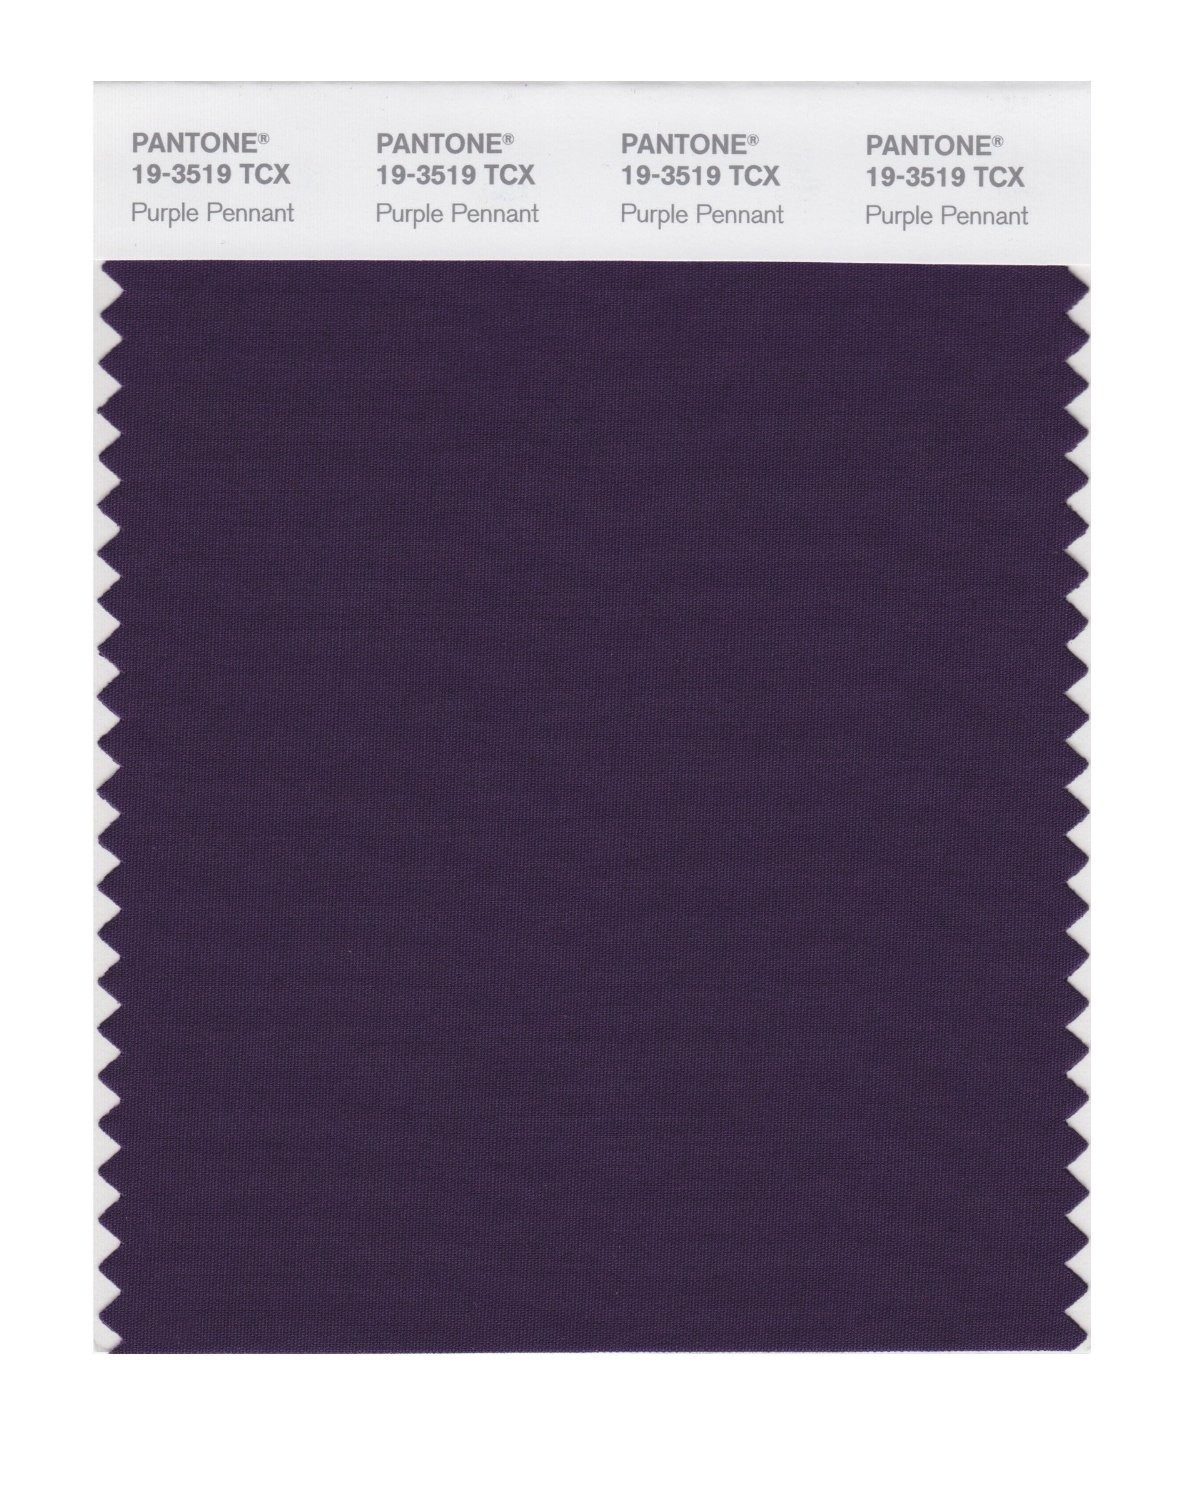 Pantone 19-3519 TCX Swatch Card Purple Pennant